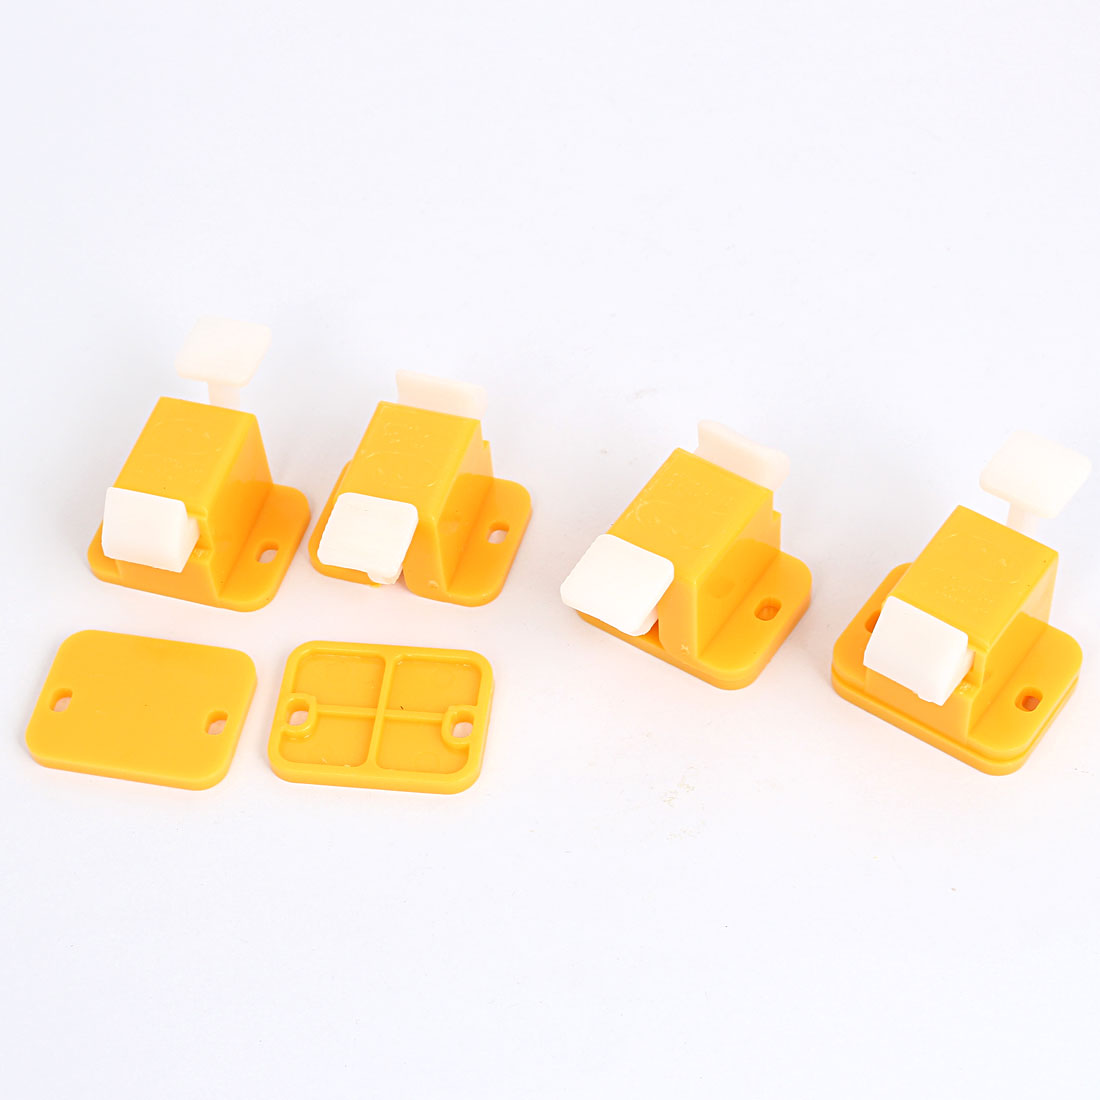 4pcs Yellow White Plastic Prototype Test Fixture Jig Edge Latch w Screws for PCB Board